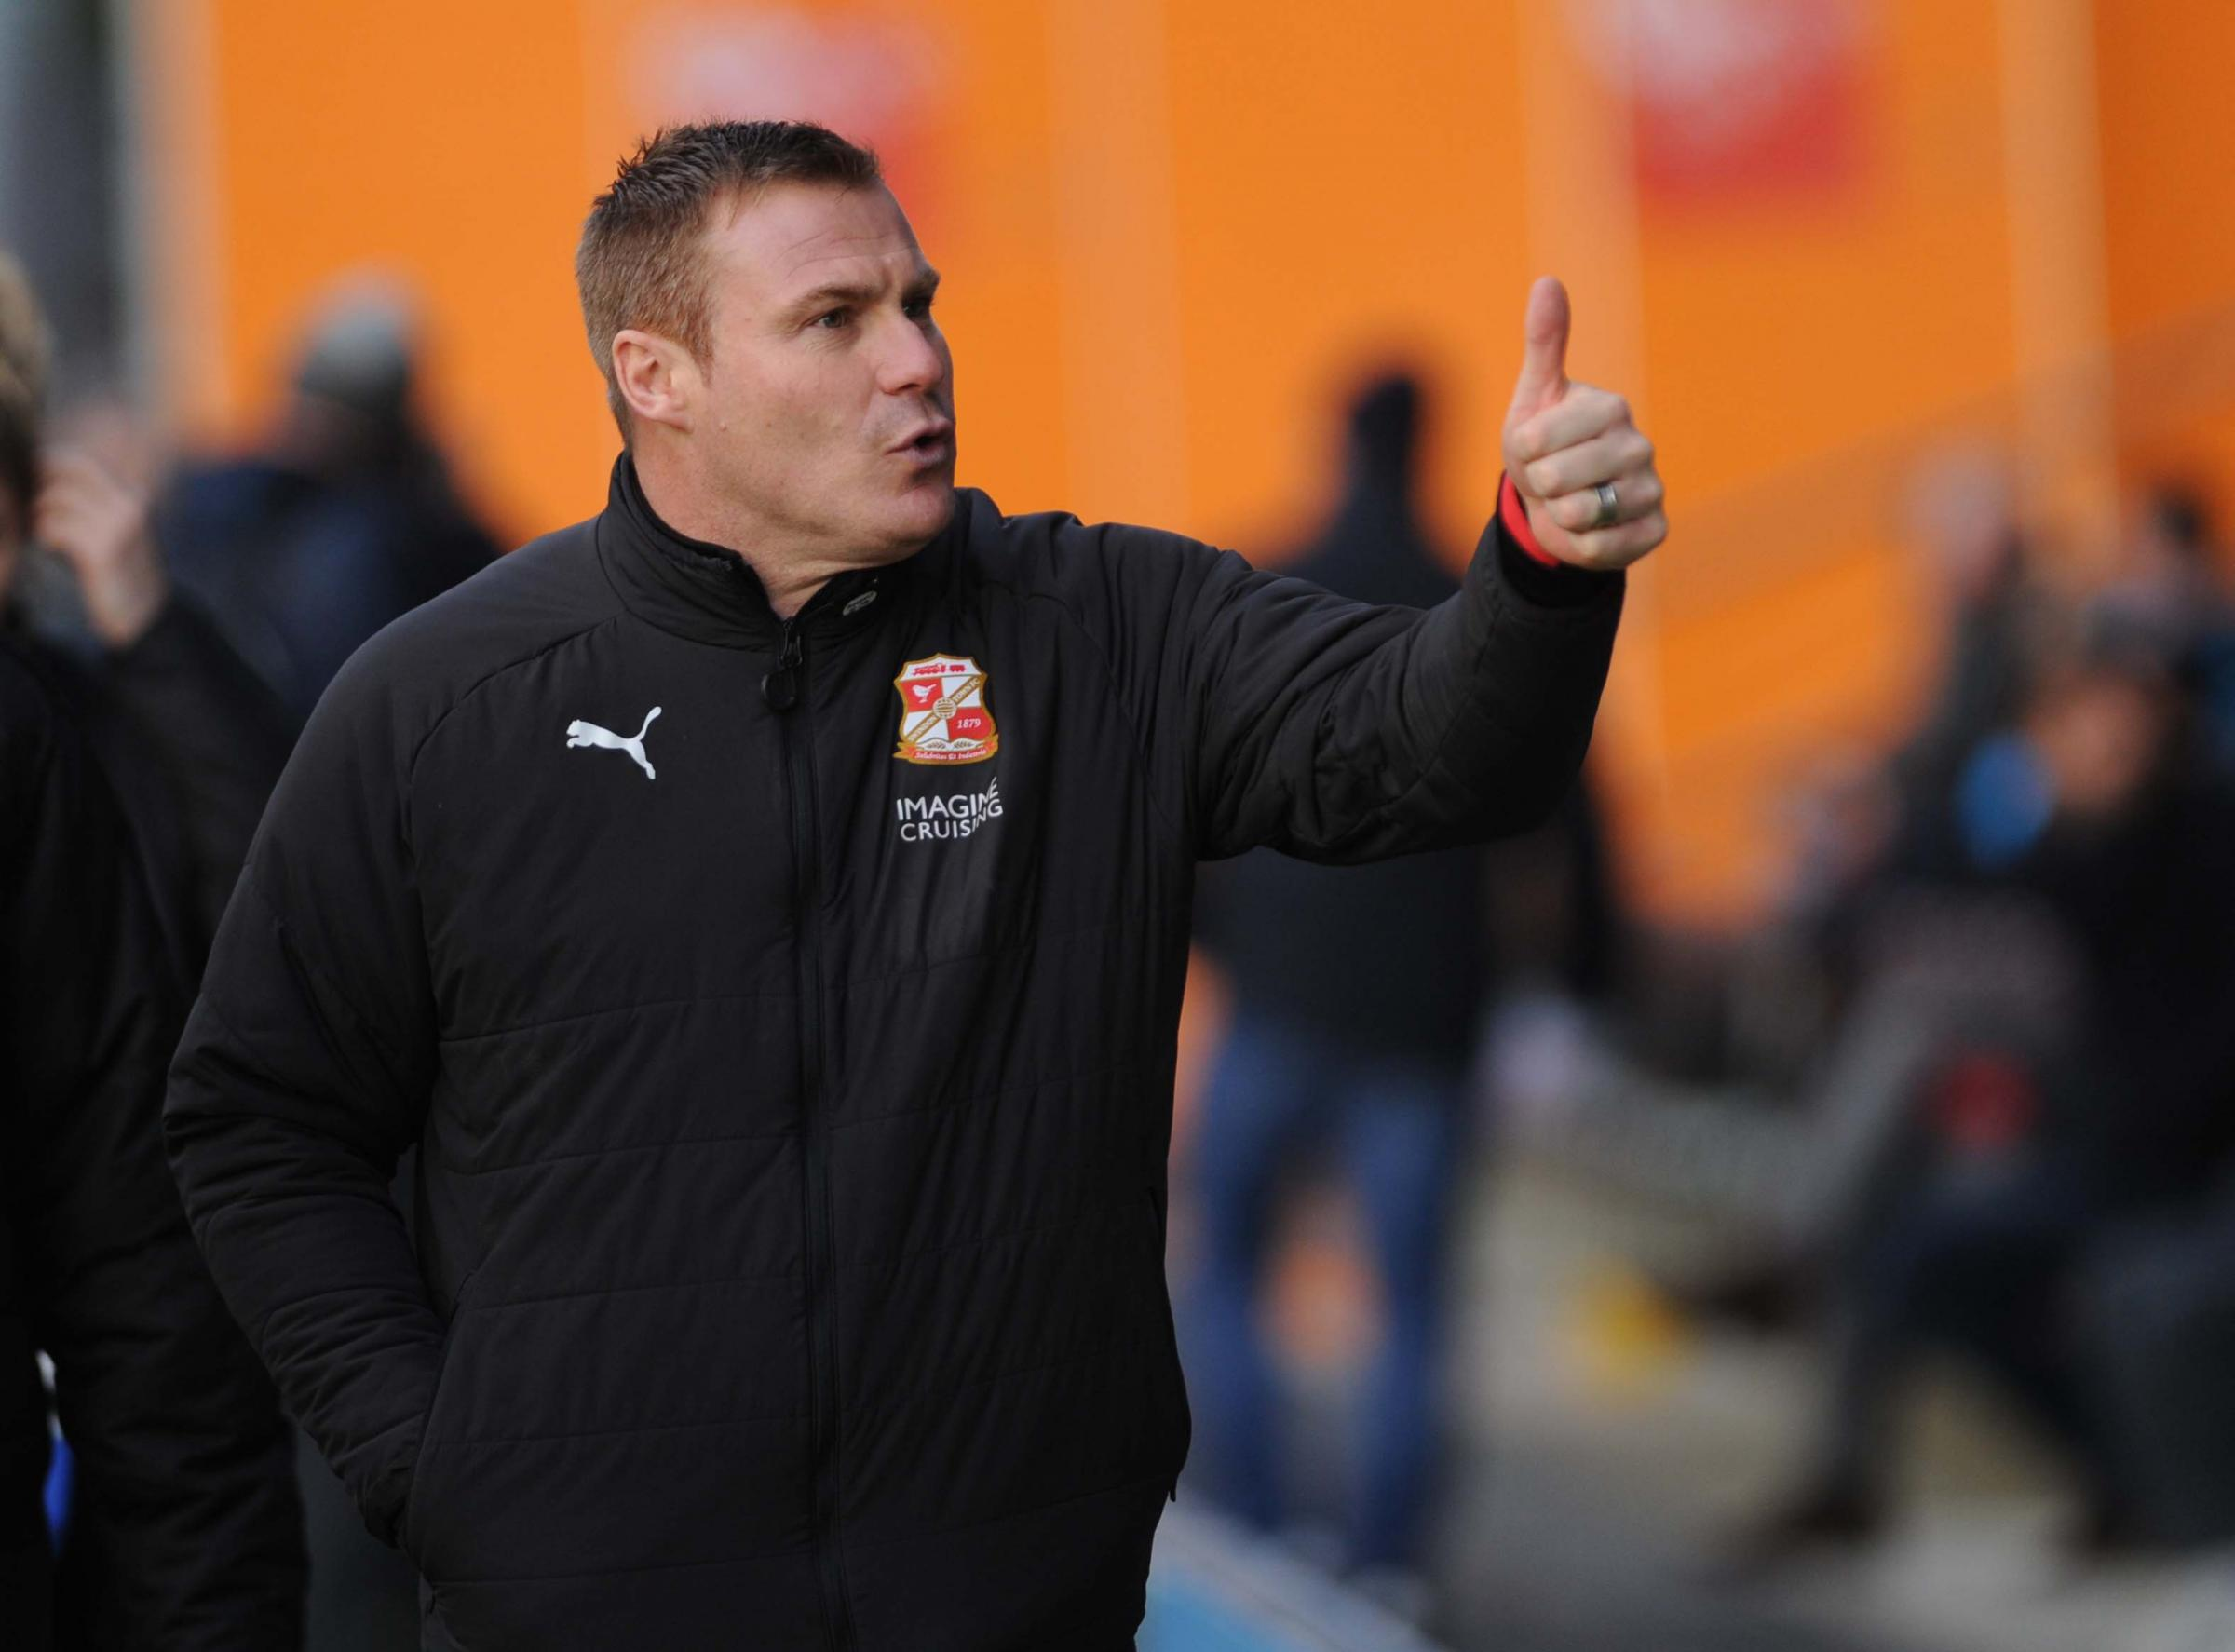 Swindon Town boss David Flitcroft